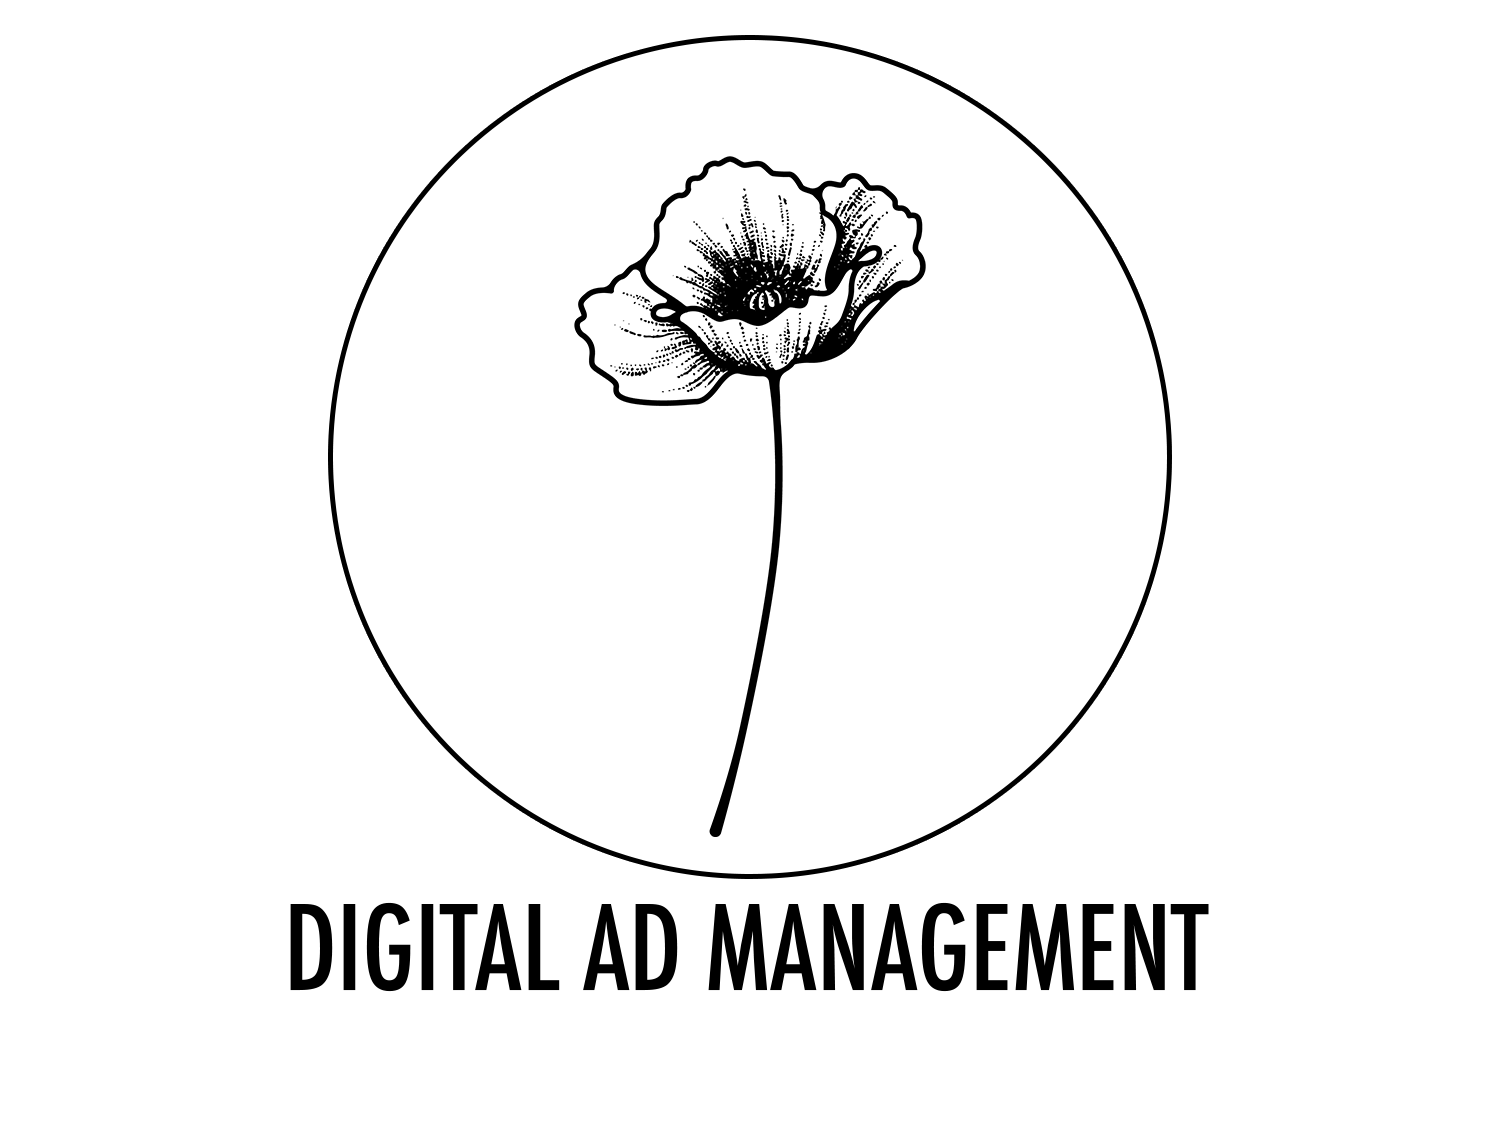 Are you confused by ads? - Don't worry- it's common to be lost in the digital ad spend world. We aren't. Let's get you caught up.